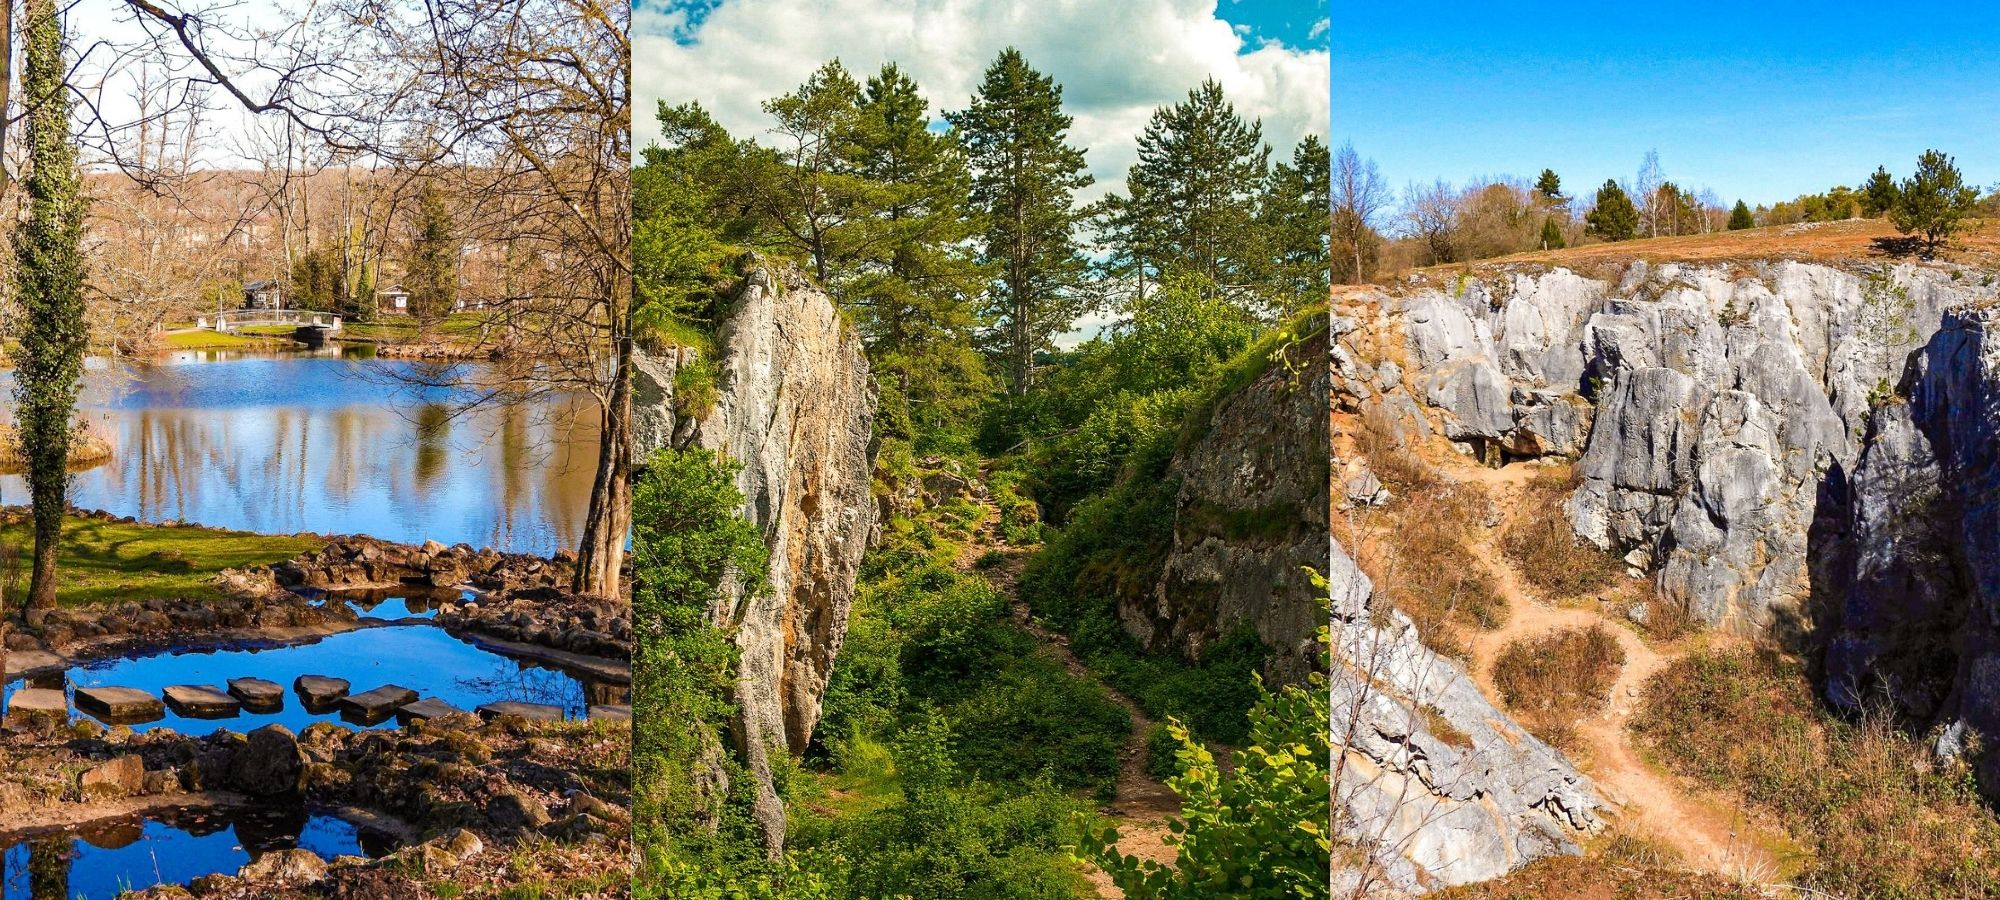 Rocky cliff faces and a lake on the La Roche aux Faucons hike